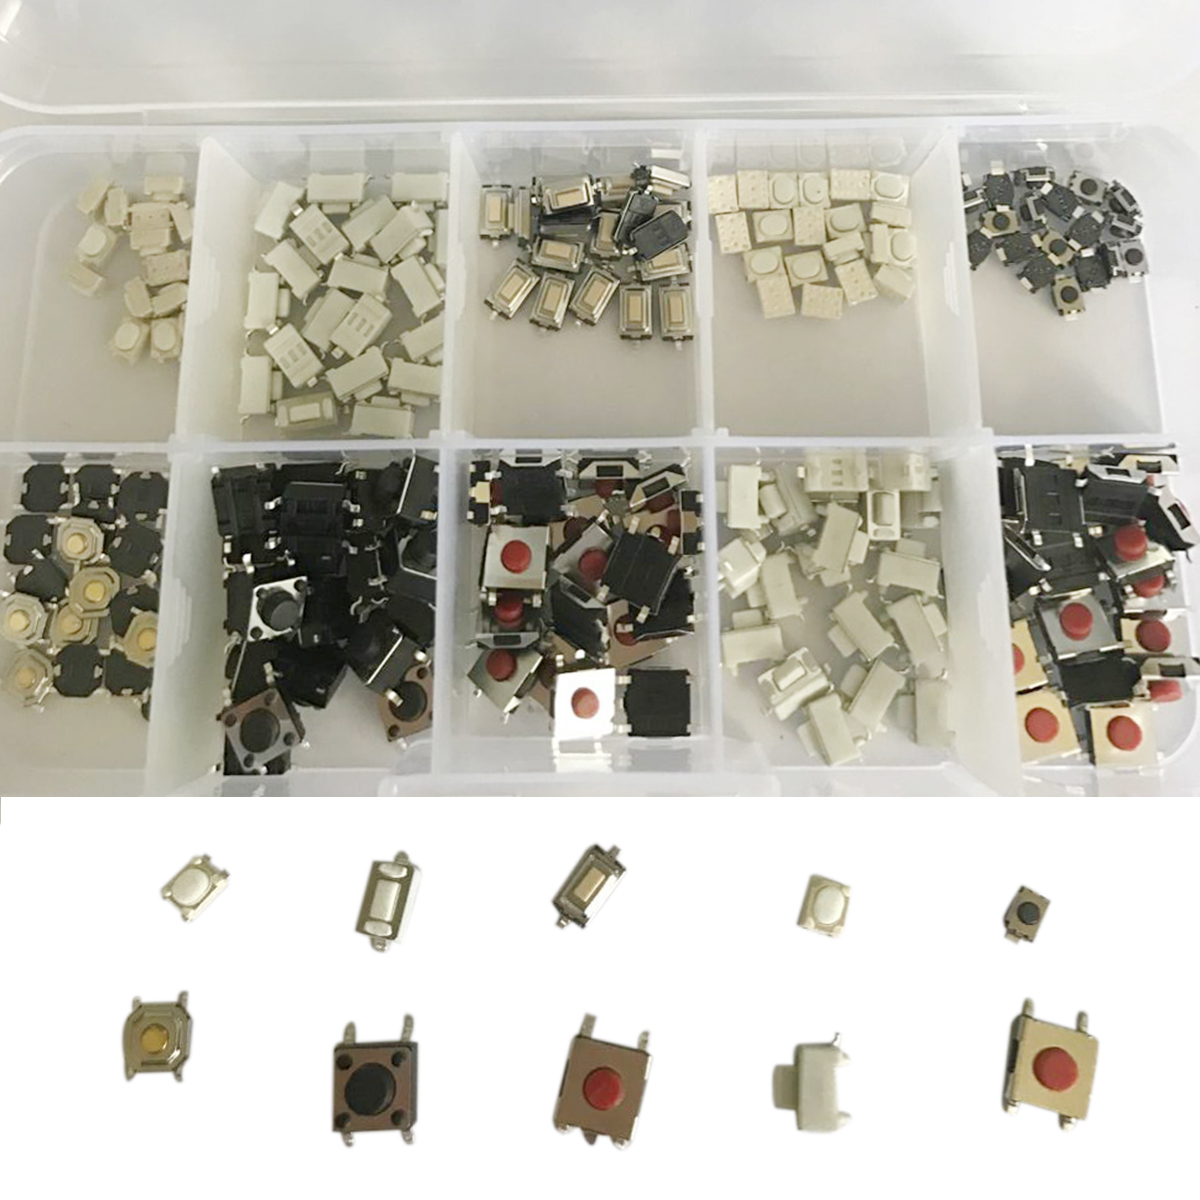 200pcs New Micro Switch 10 Types Remote Control Key SMD SMT Switch Microswitch For TV Audio Equipment